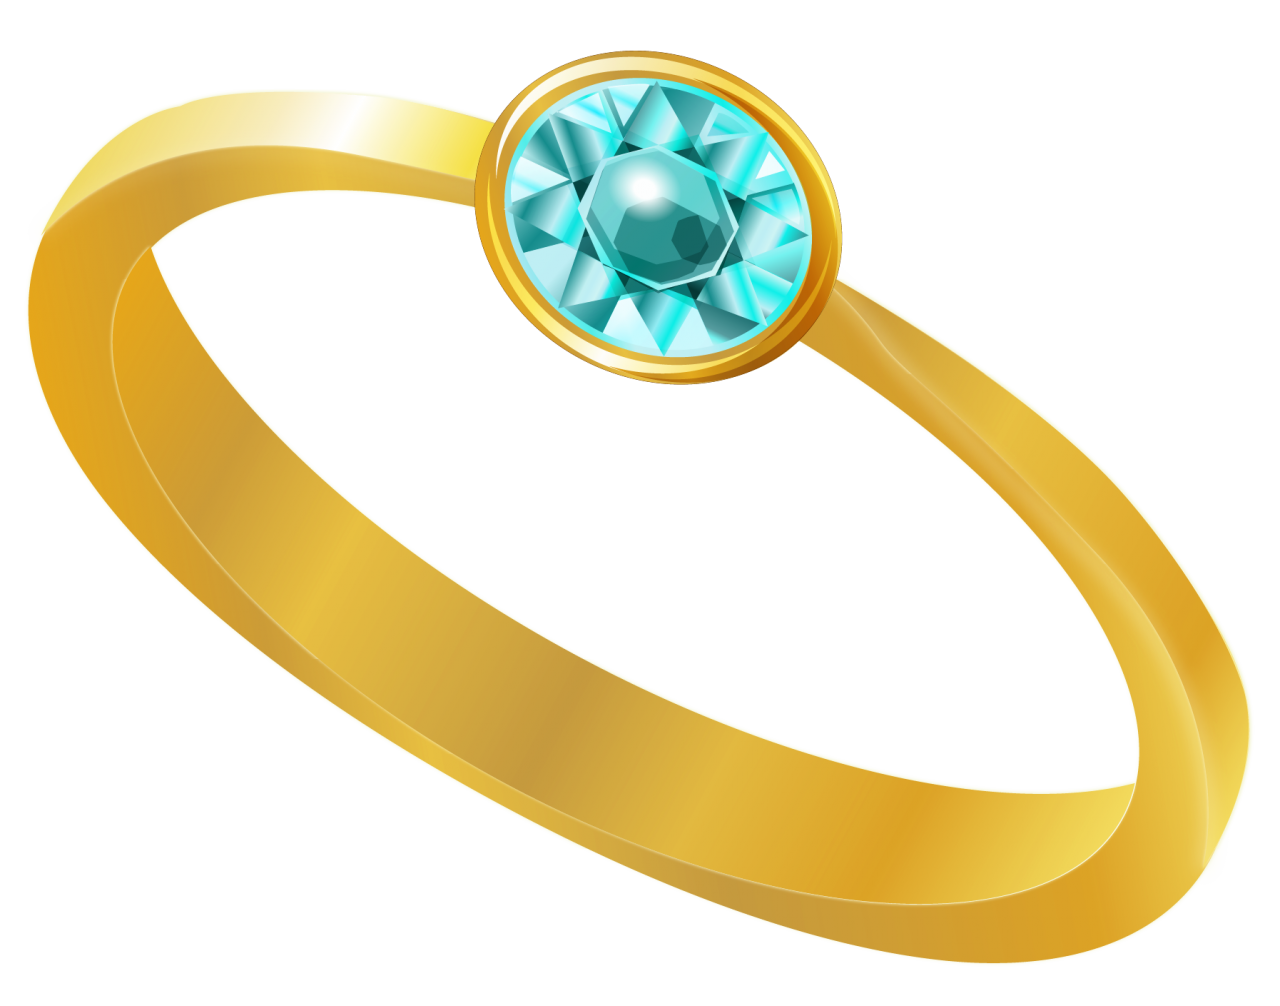 Gold Ring With Blue Diamond PNG Image